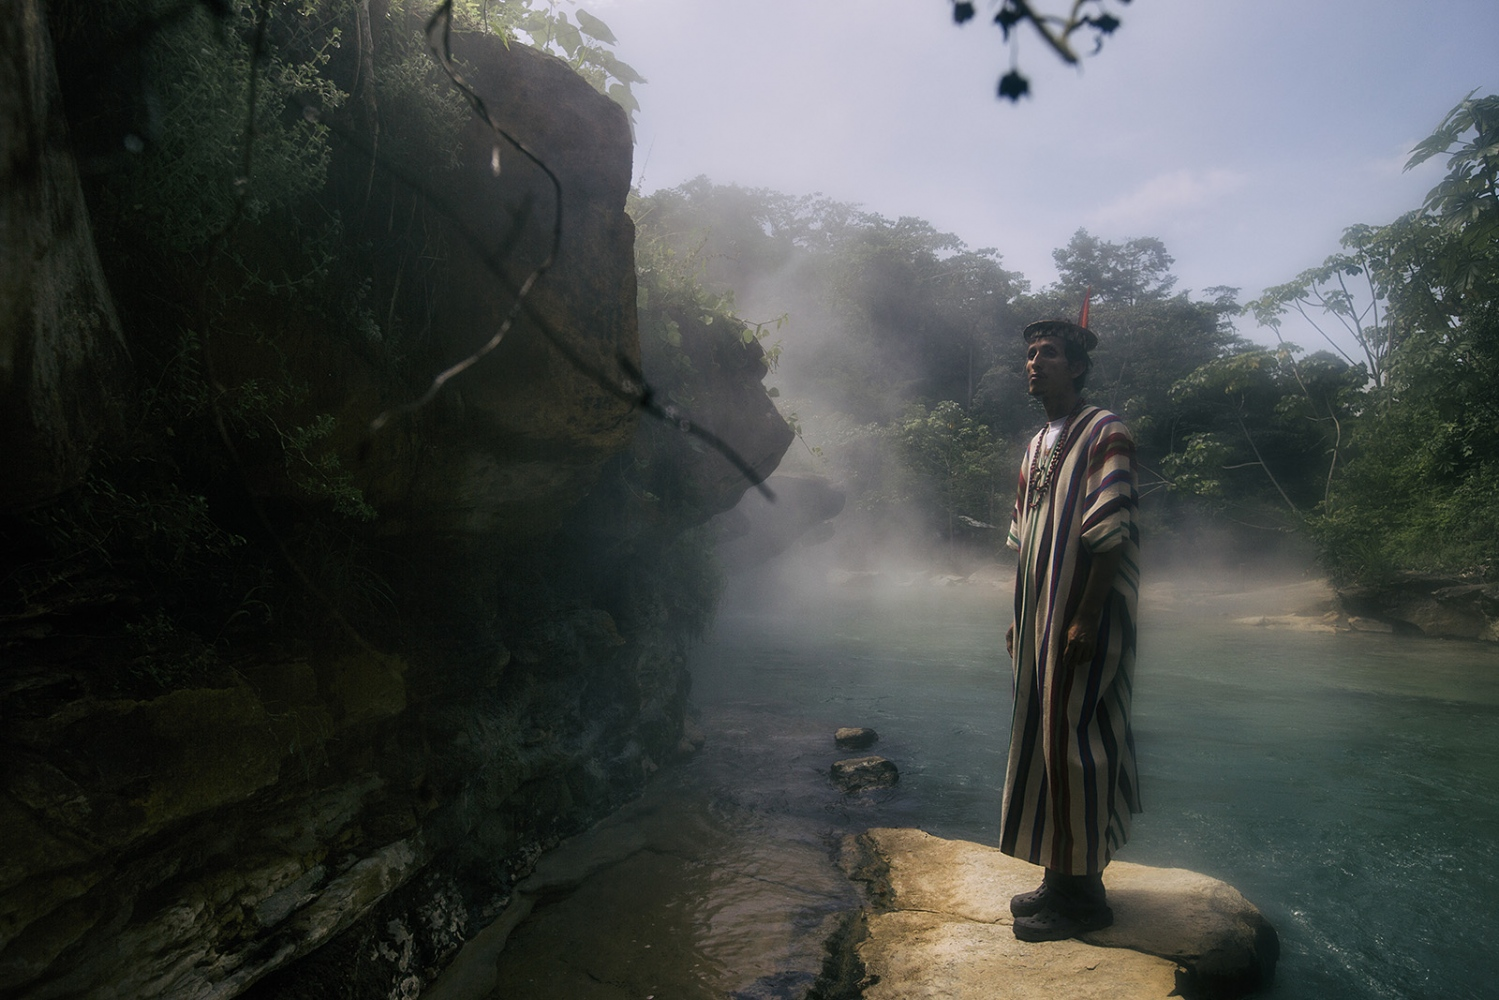 Enharte, 36 years old, assistant and thenshaman in Mayantuyacu since his 30.